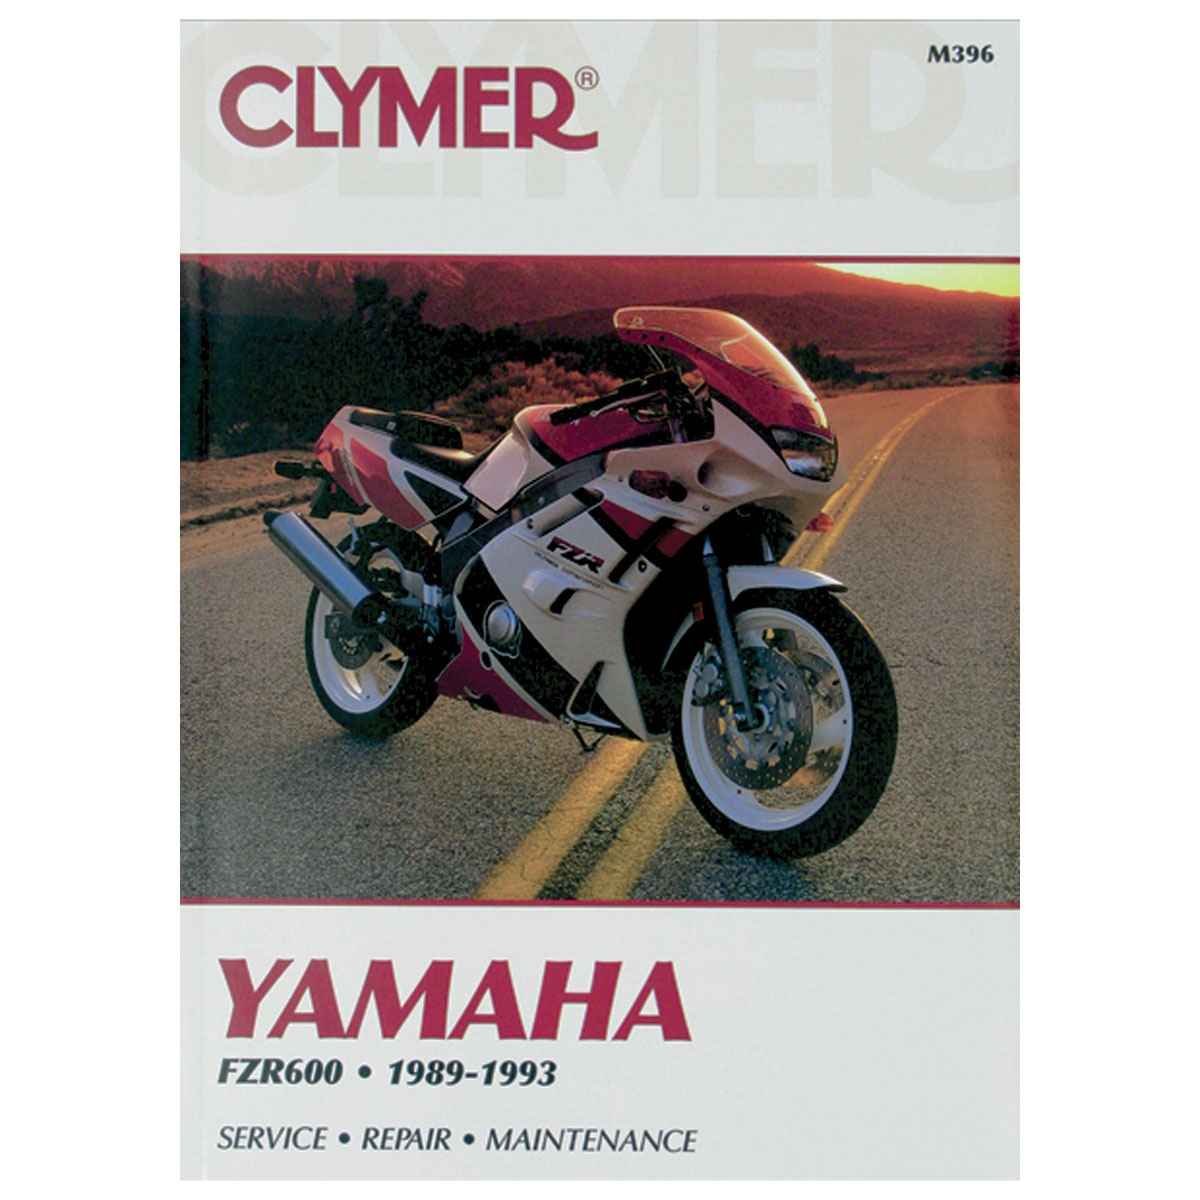 clymer yamaha motorcycle repair manual 181 2322 j p cycles rh jpcycles com motorcycle manual yamaha road star warrior Yamaha Motorcycle Engine Manual